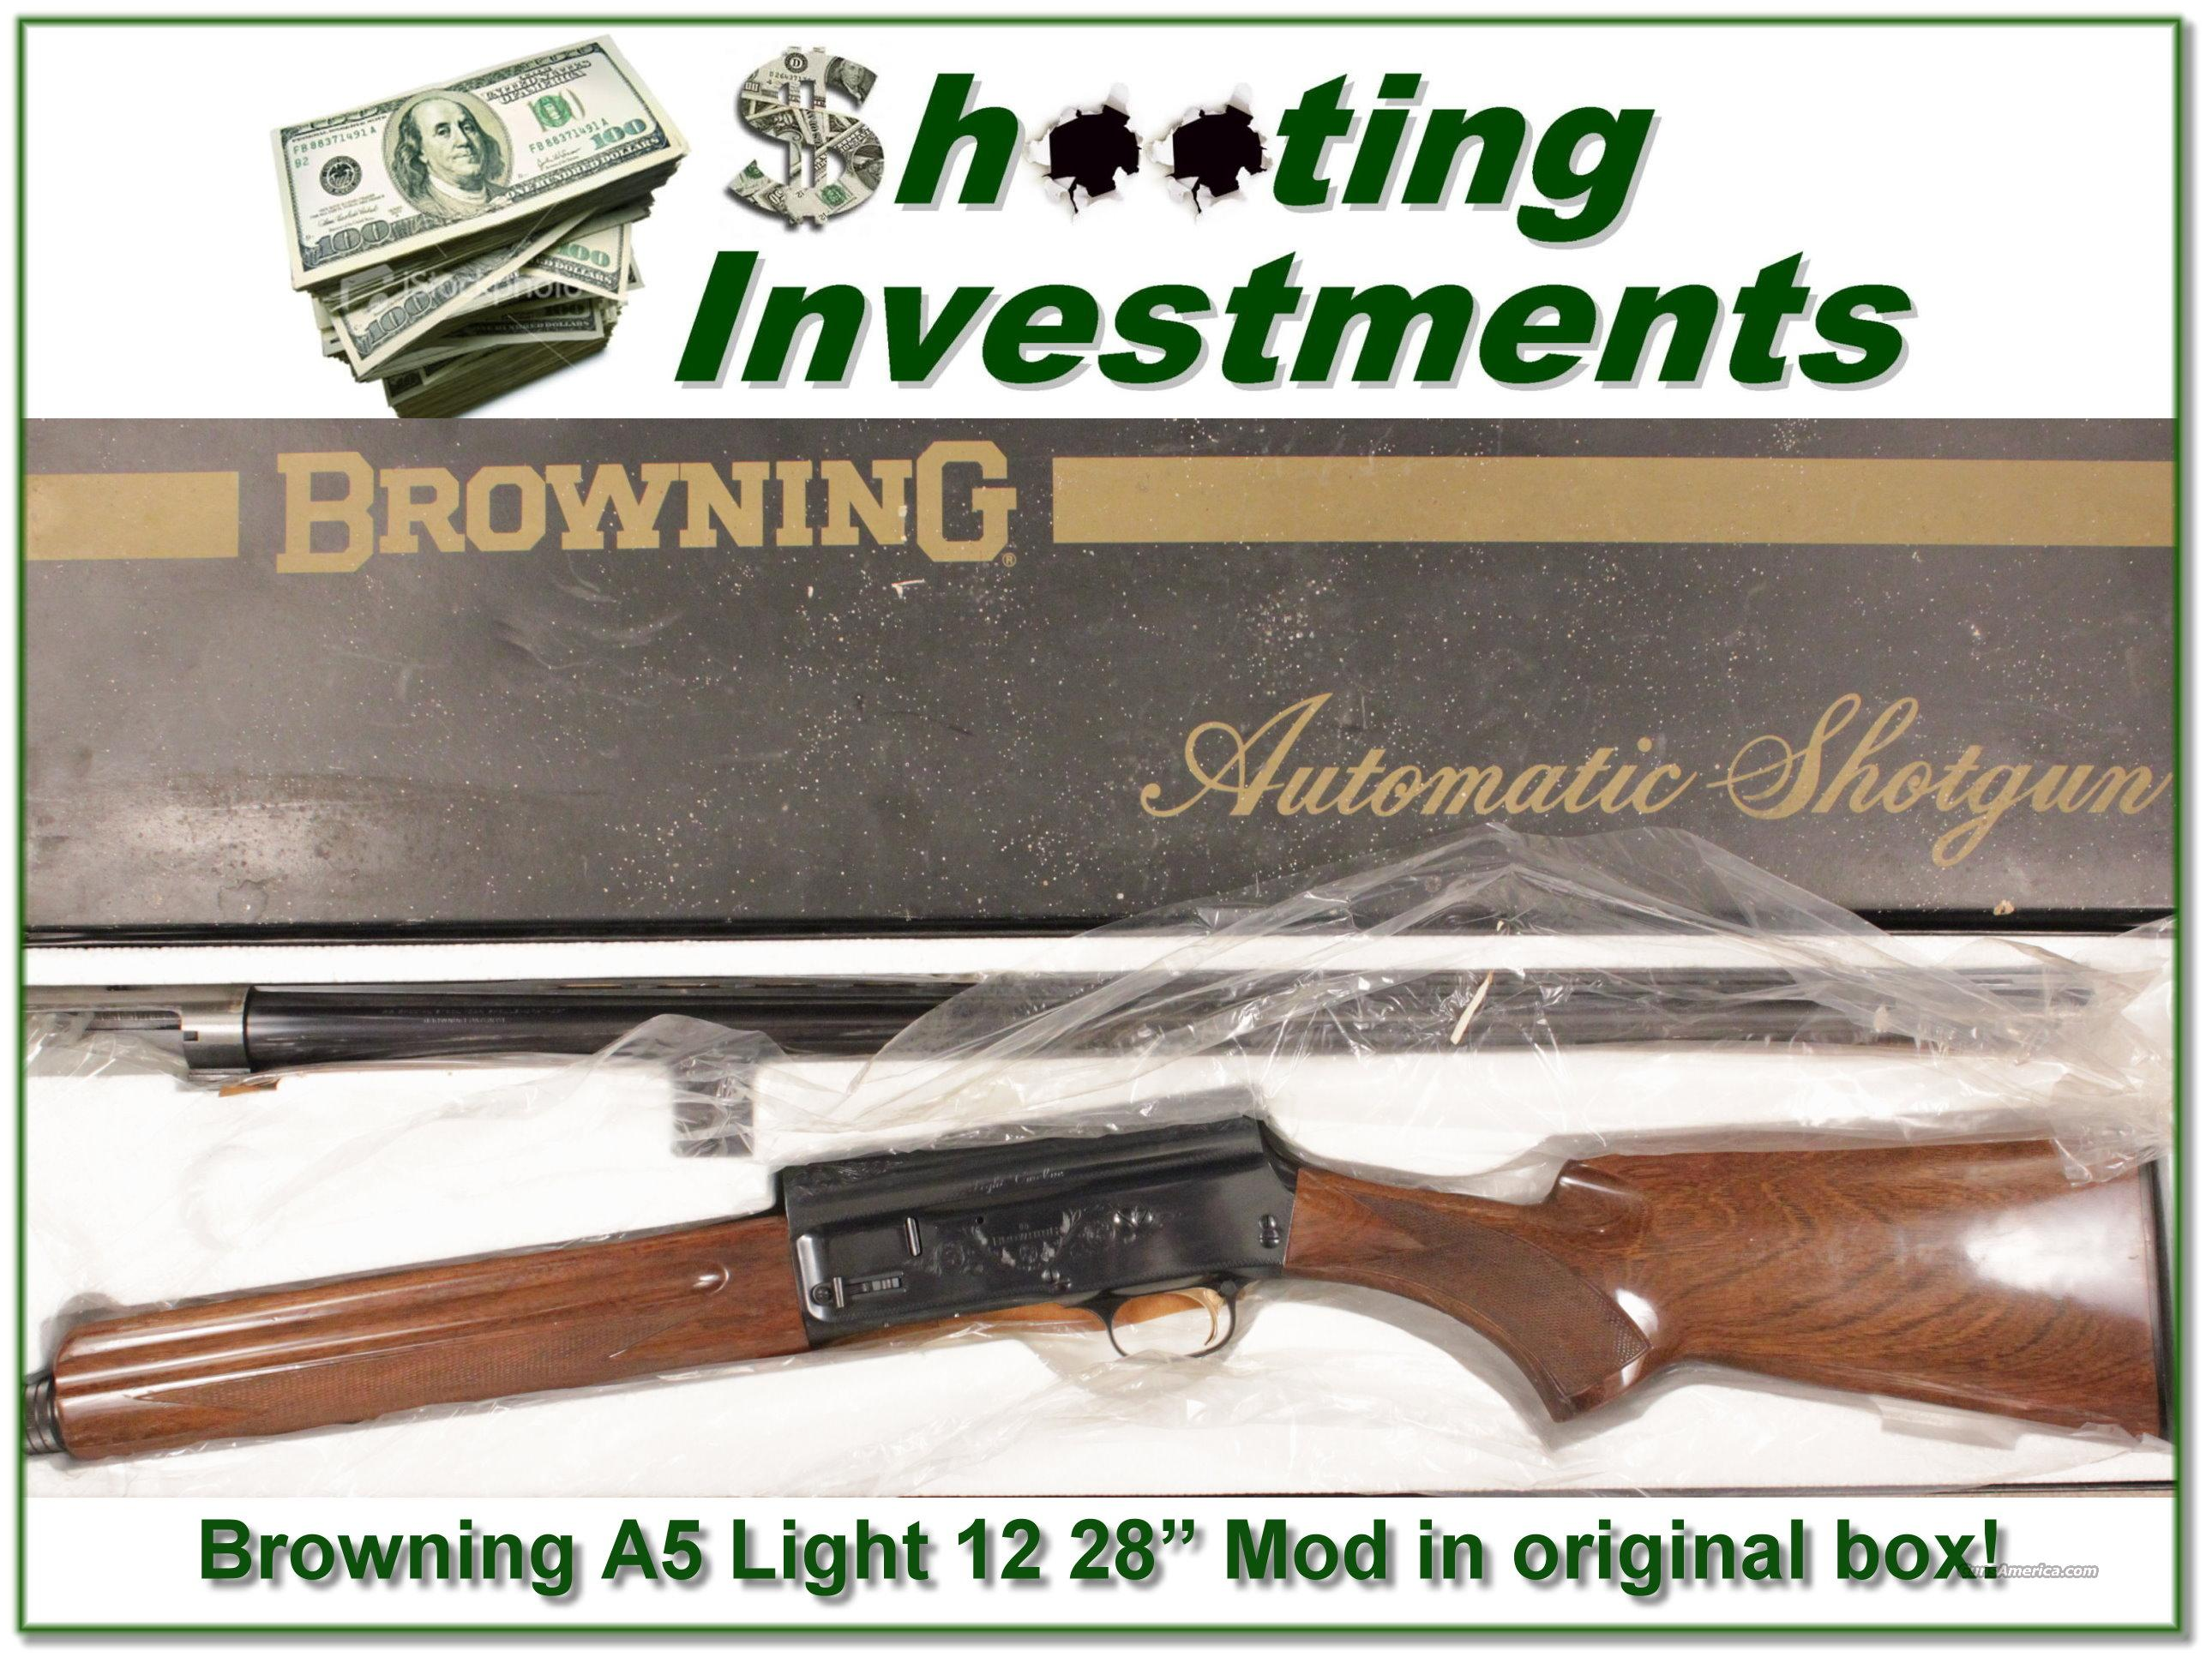 "Browning A5 Light 12 28"" Mod in original box!  Guns > Shotguns > Browning Shotguns > Autoloaders > Hunting"